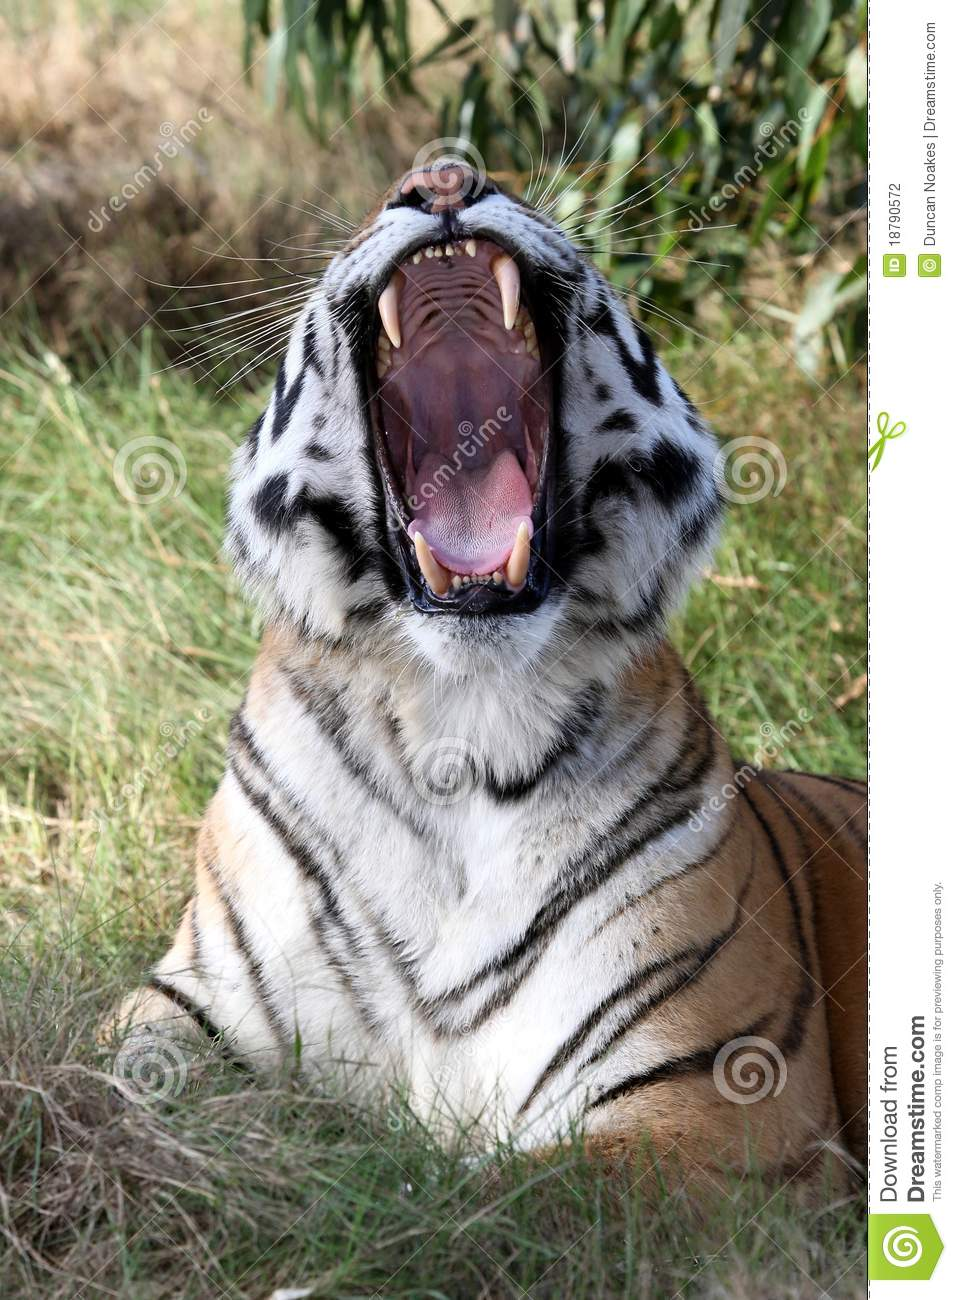 Tiger Teeth on Mouth Clip Art